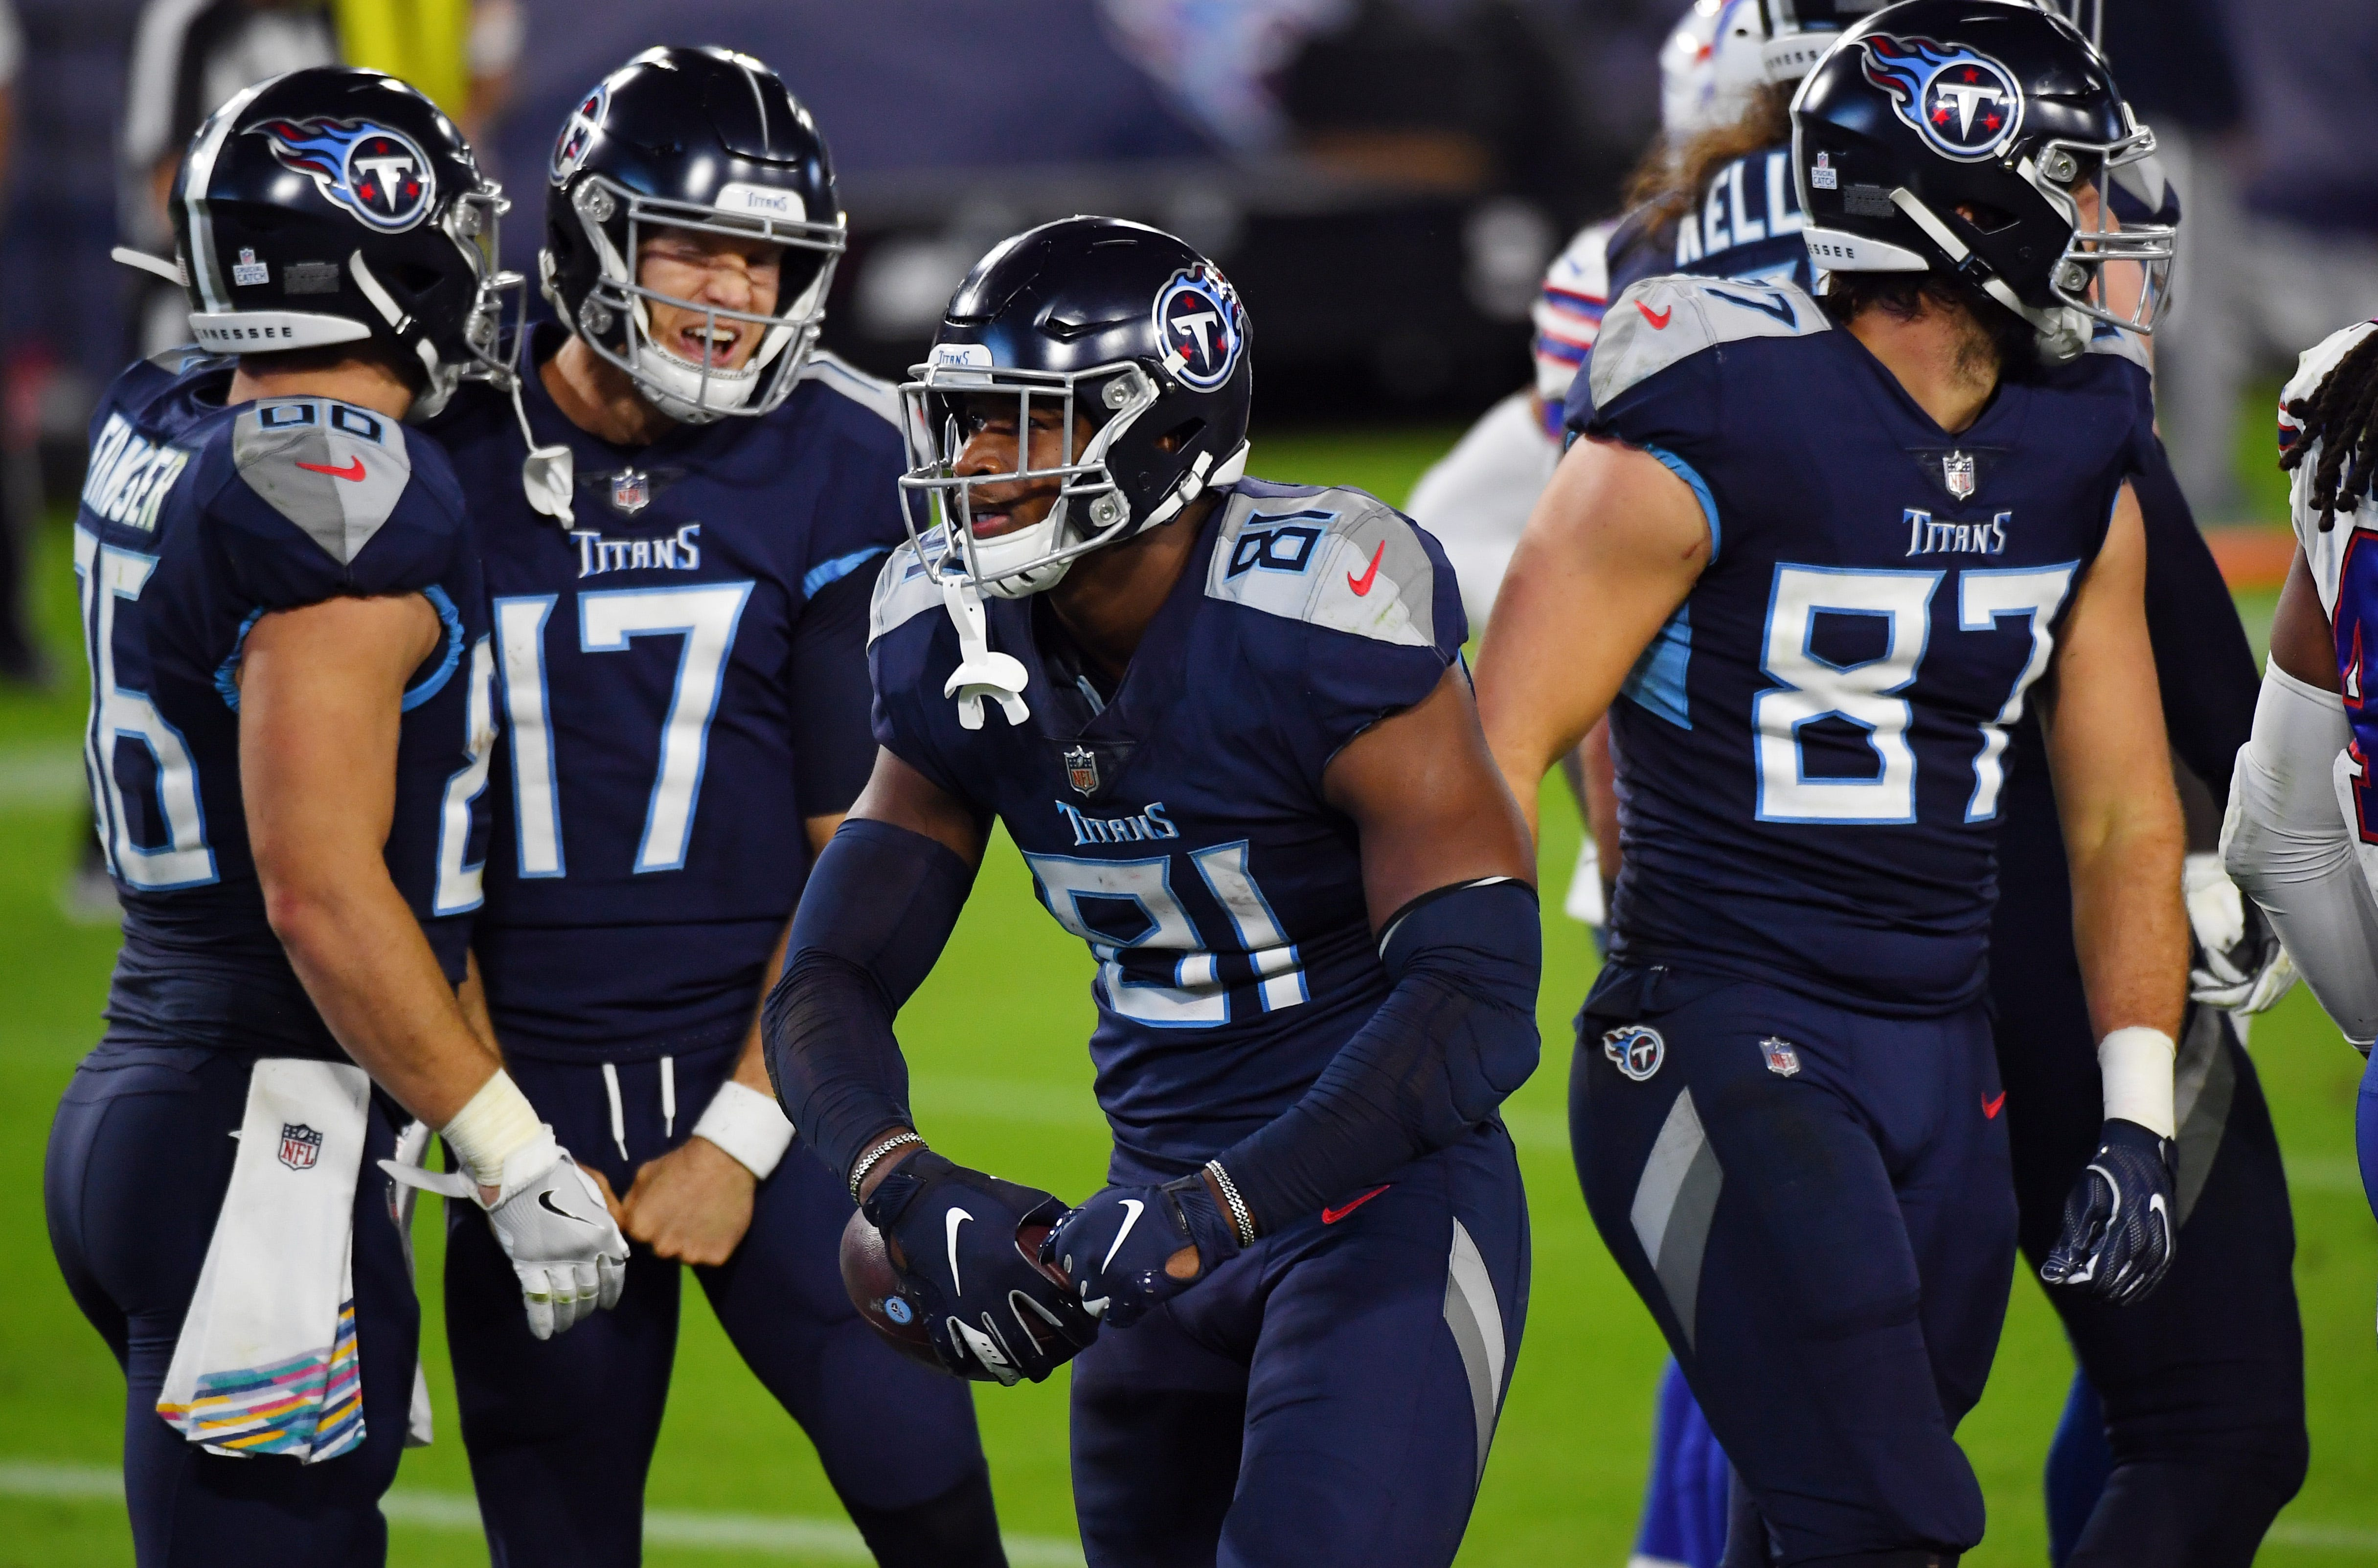 Titans Roll Bills In First Game After Covid 19 Outbreak